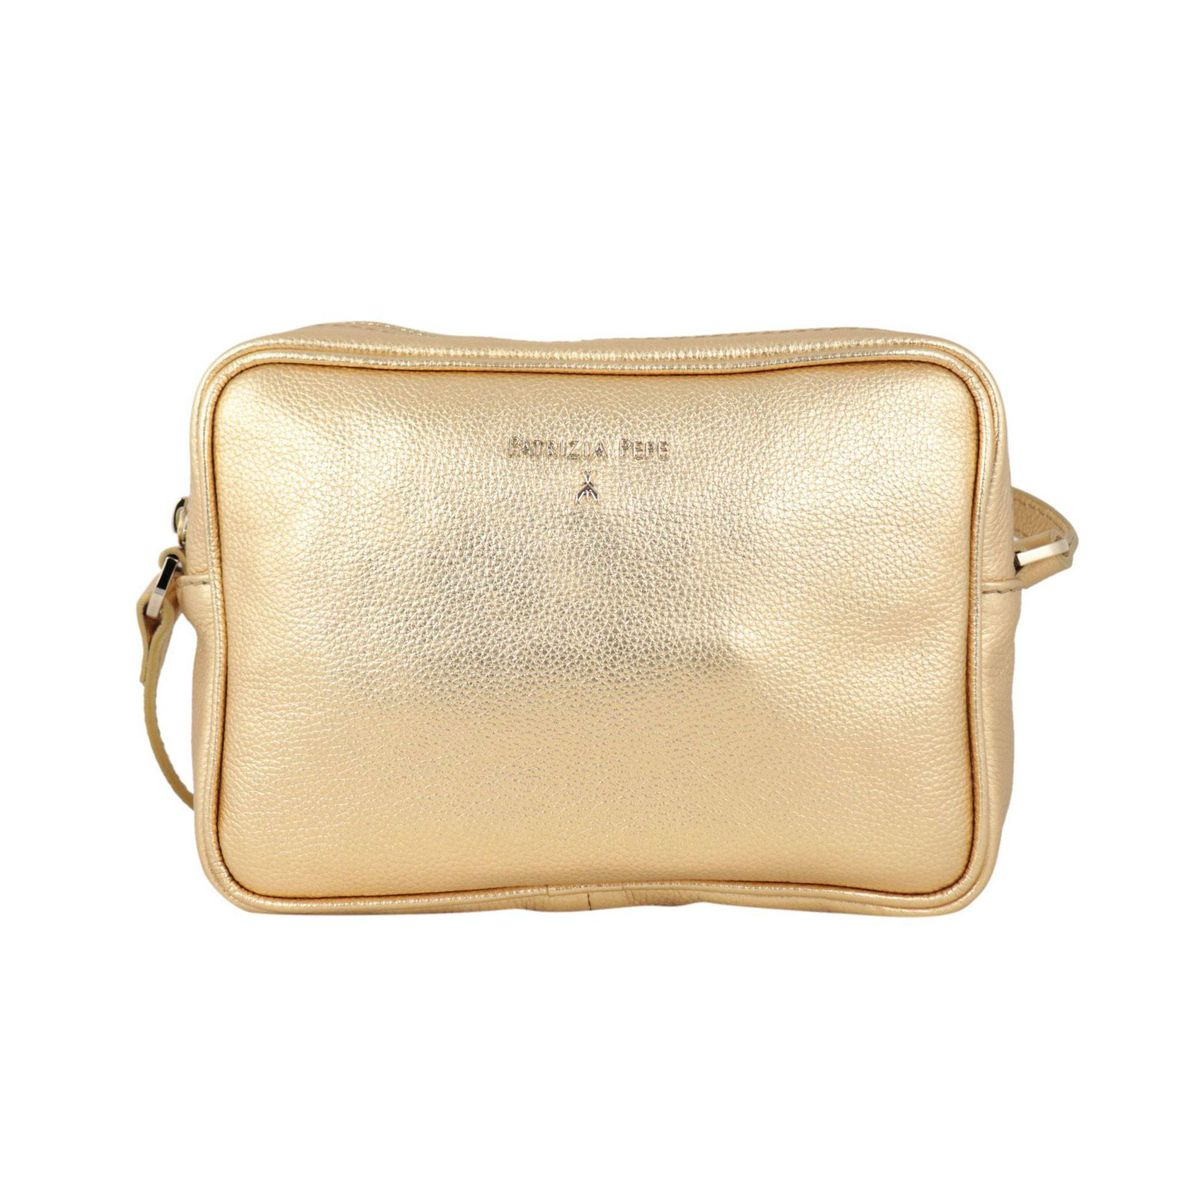 Small shoulder bag in textured leather with embossed metal logo Gold Patrizia Pepe